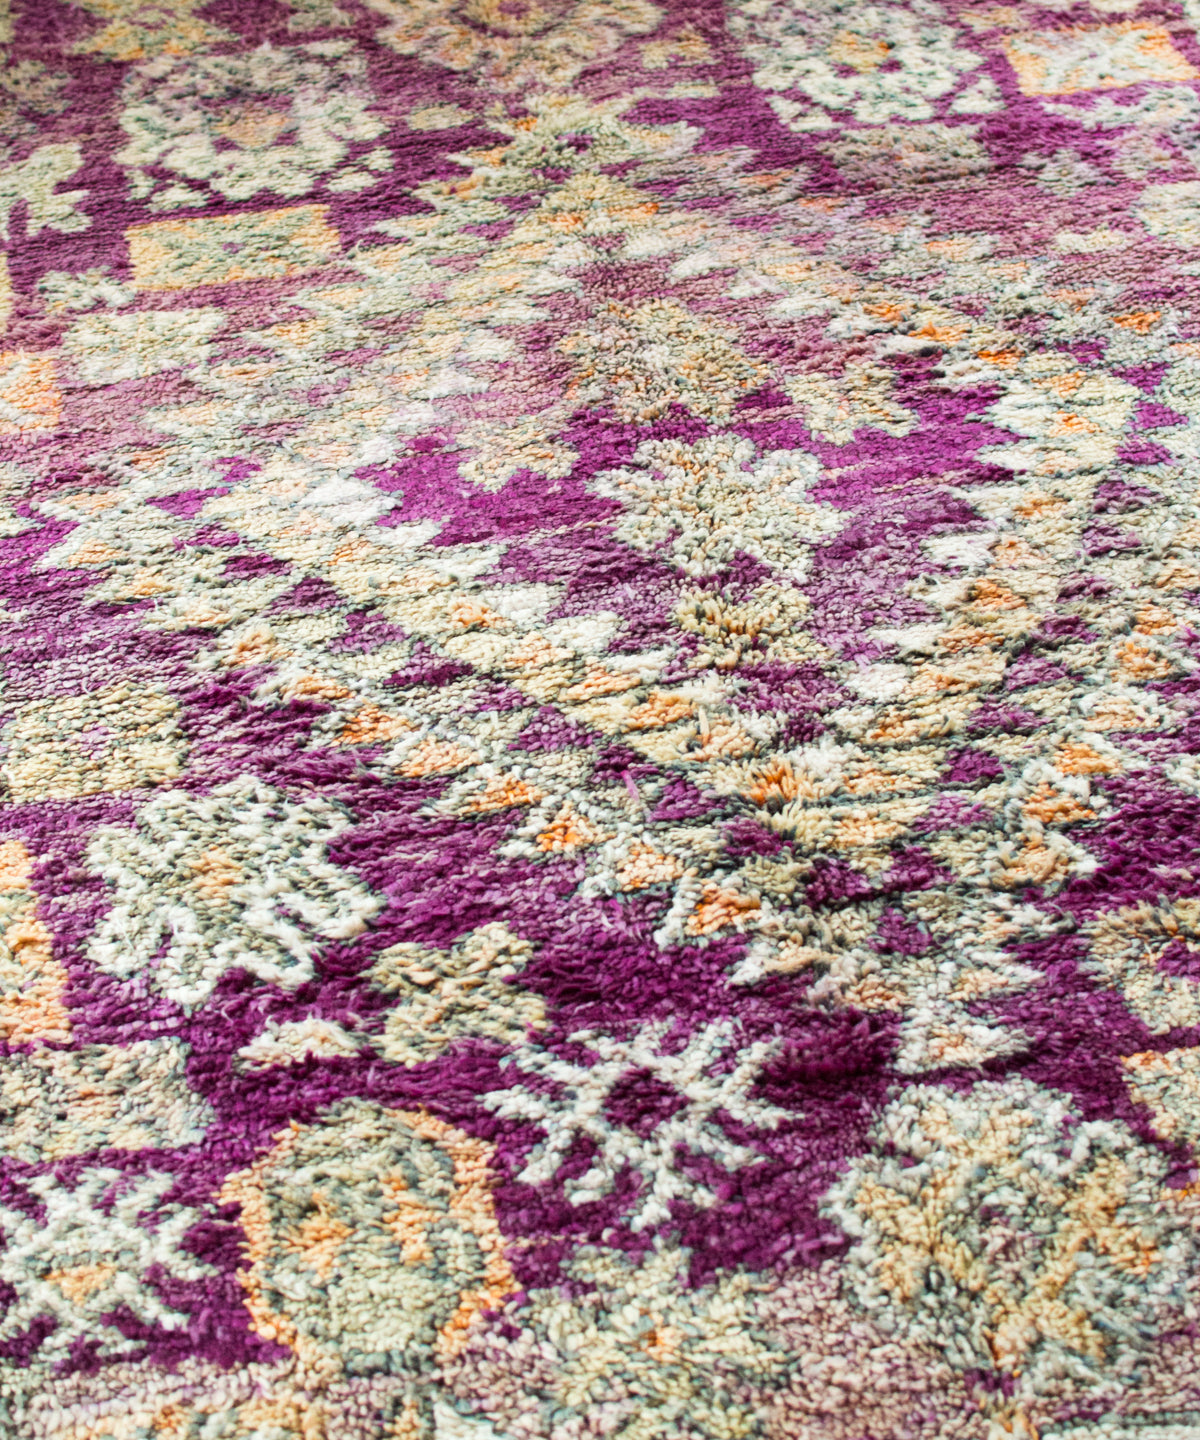 Jewel Box Vintage Moroccan Rug